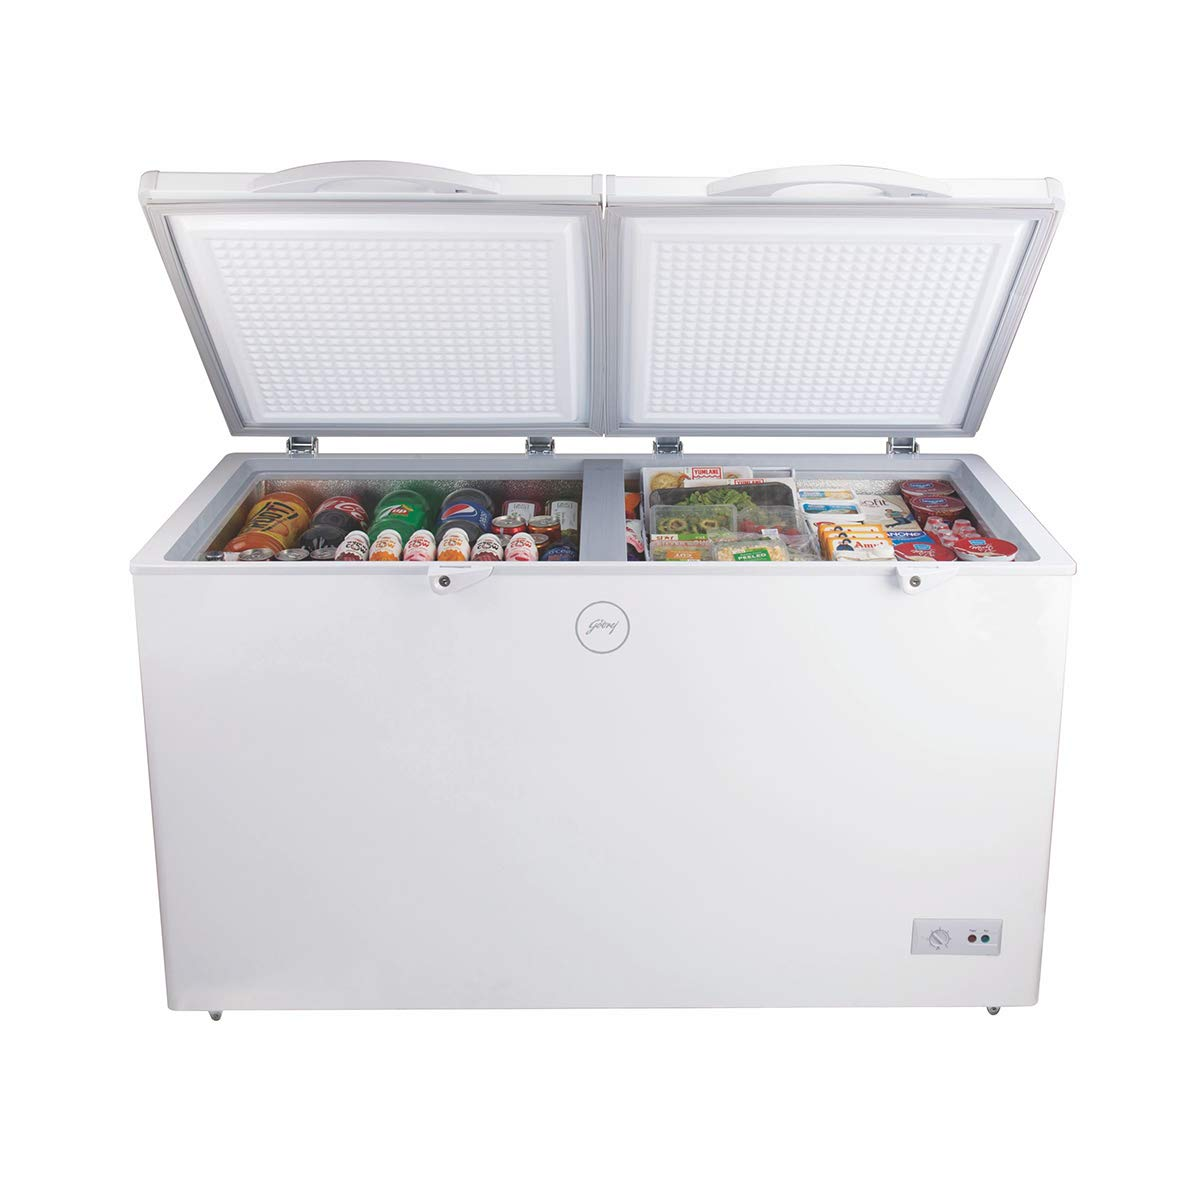 Godrej 400 L Deep Freezer (White).